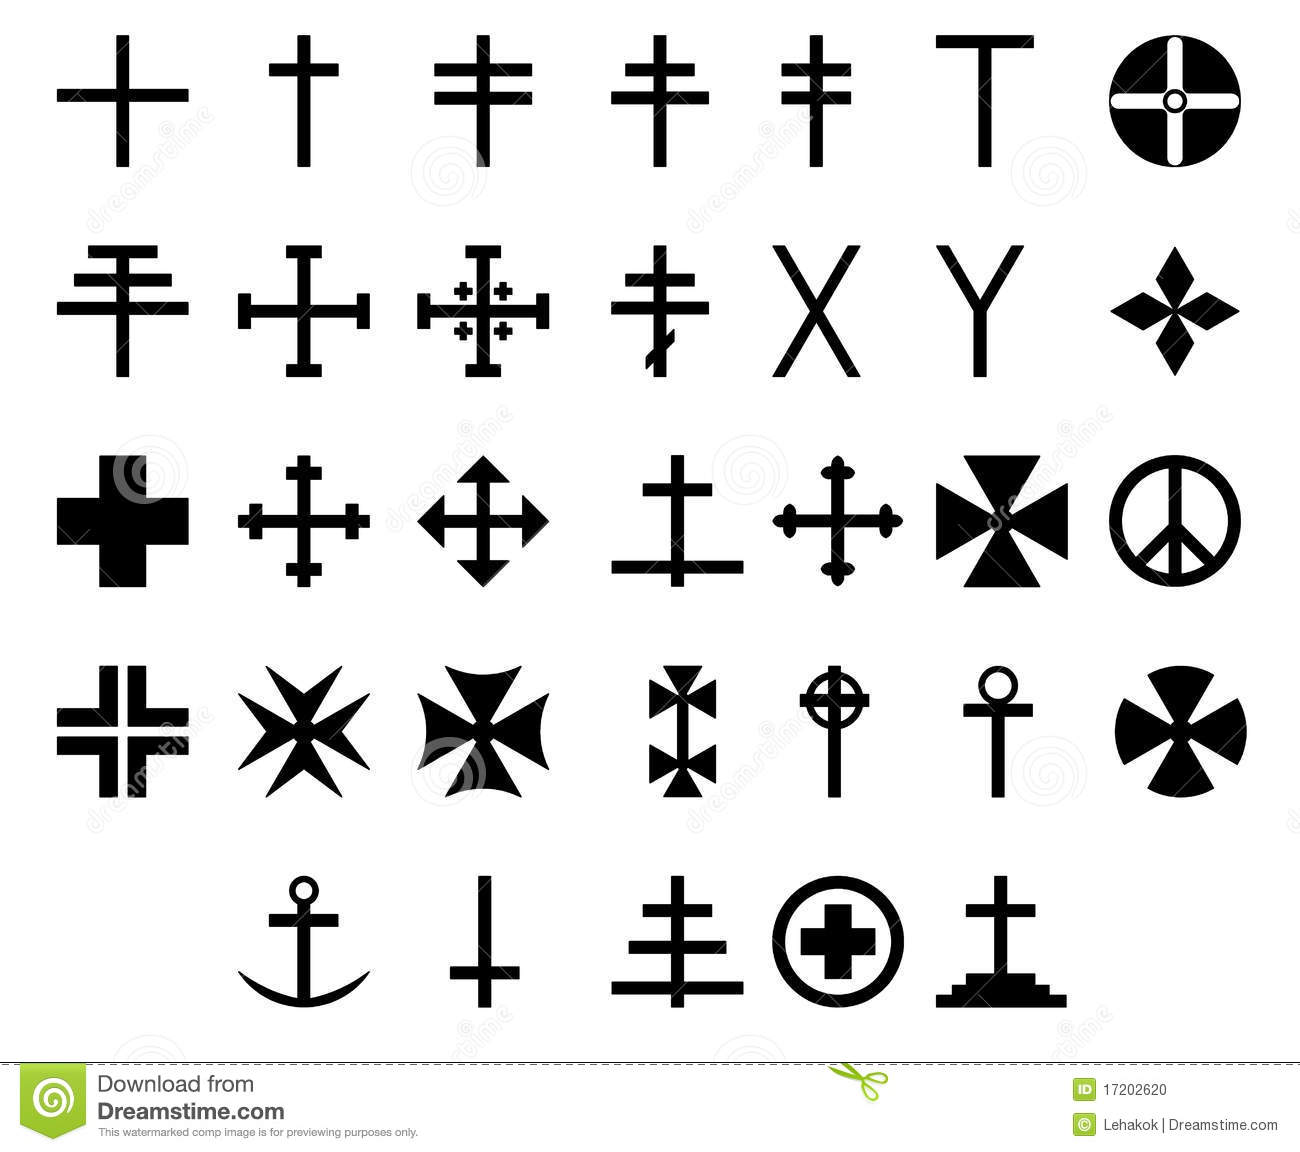 Ancient werewolf symbols and meanings choice image symbol and greek symbol tattoos gallery symbol and sign ideas greek symbols tattoos ancient greek symbols tattoos buycottarizona buycottarizona